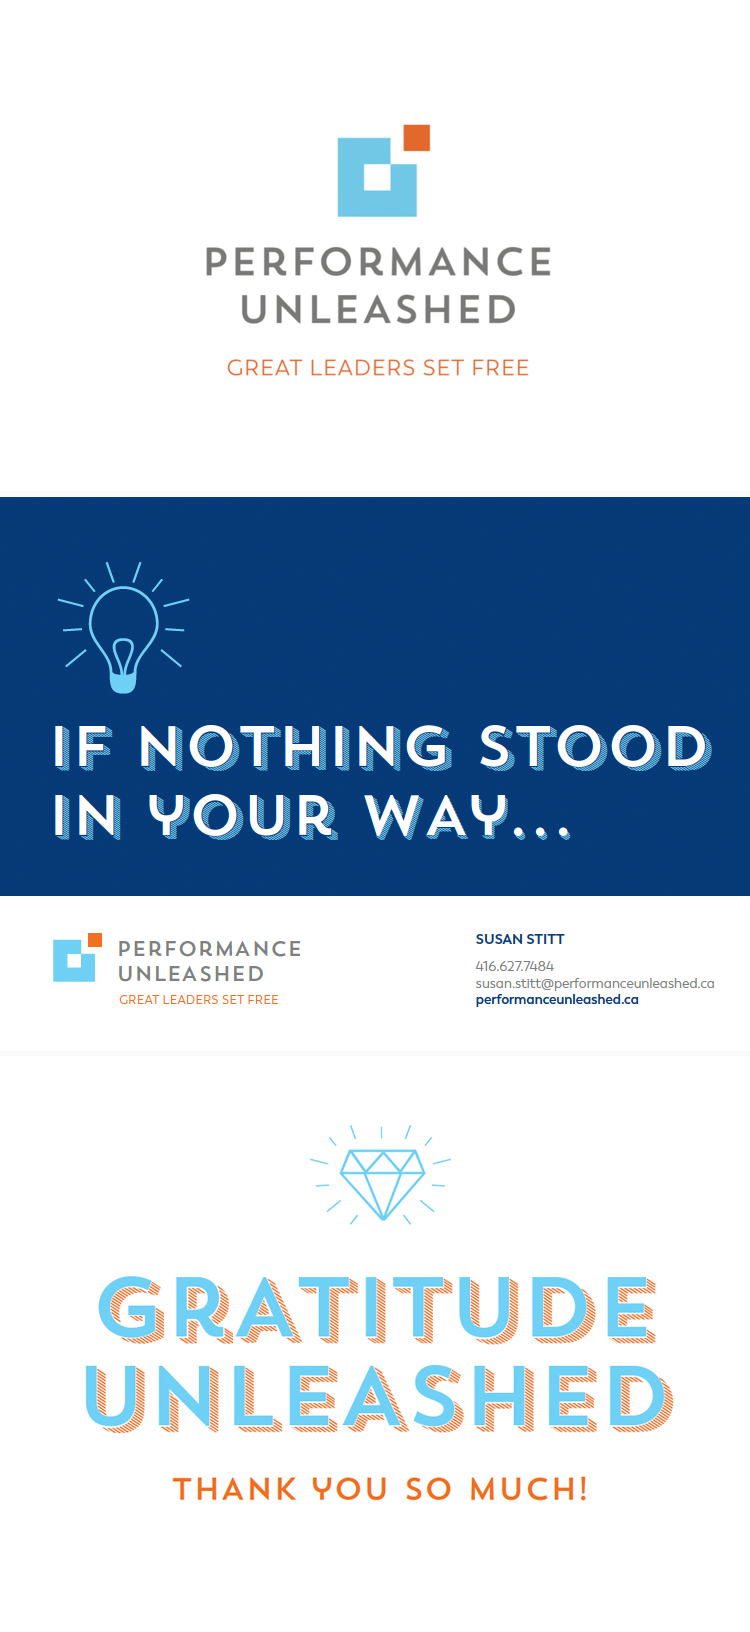 Performance Unleashed Branding